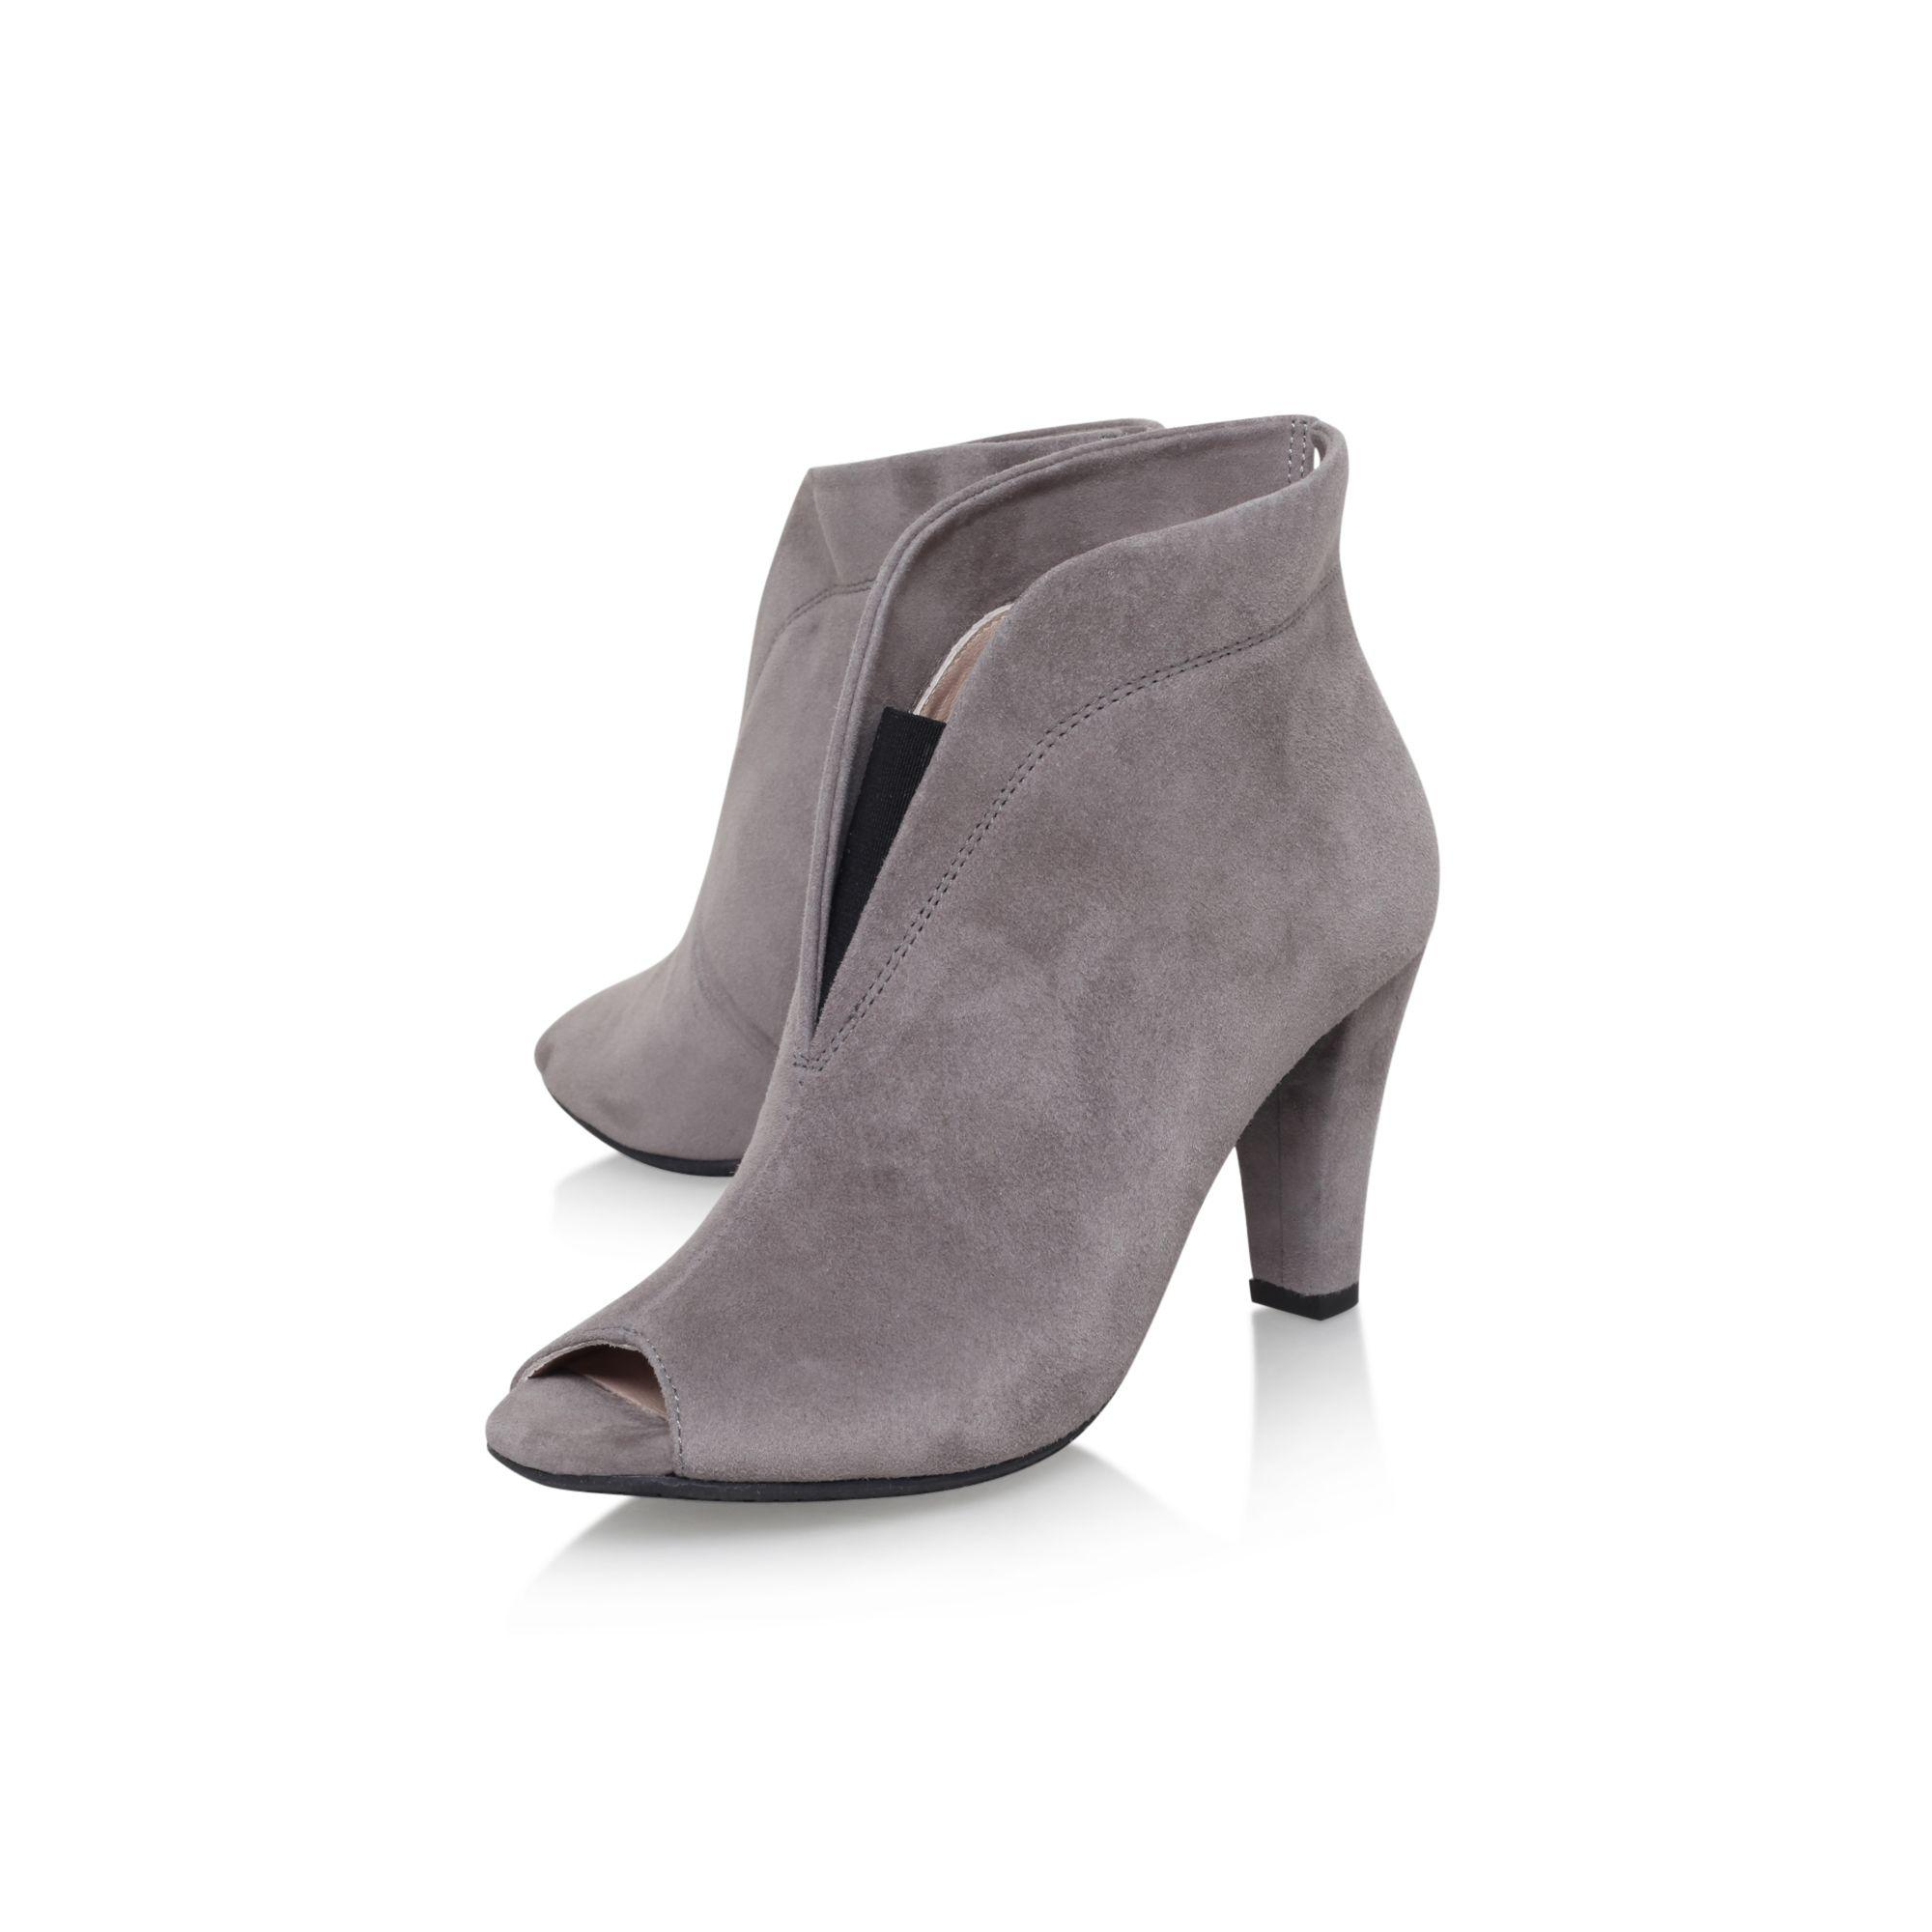 Carvela Kurt Geiger Grey 'rachel' Mid Heel Open Toe Ankle Boot in Grey